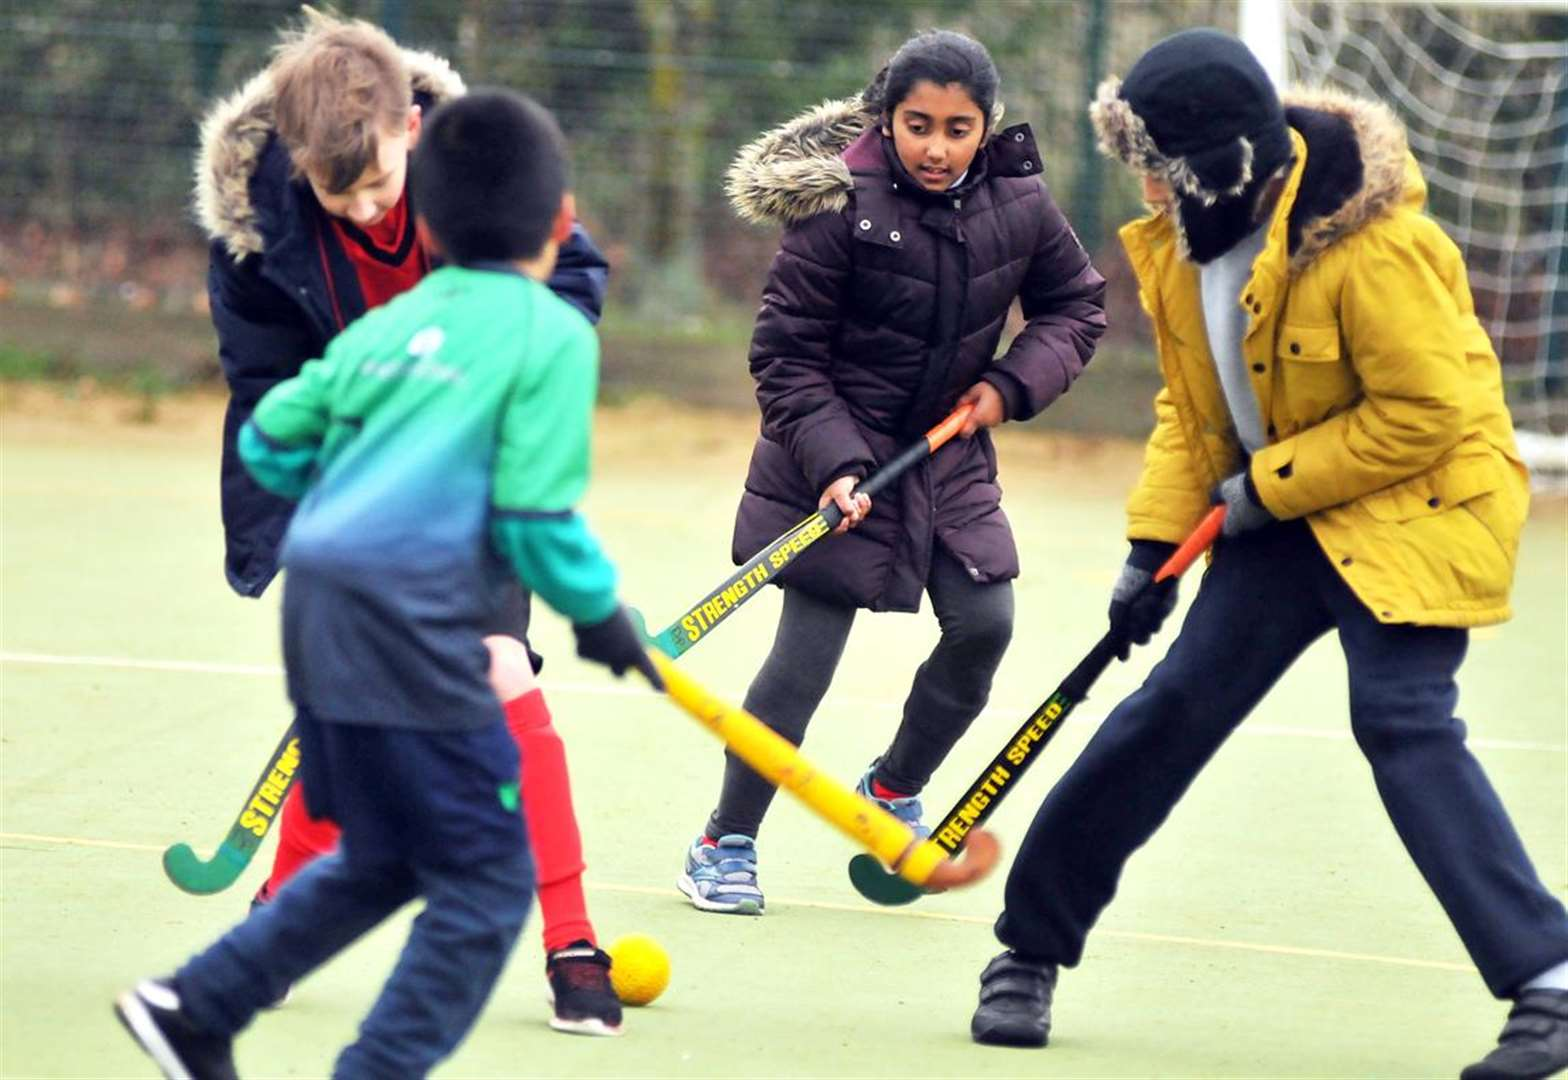 PICTURE GALLERY: Teams from Market Deeping and three Bourne schools battle it out in Quicksticks Hockey tournament